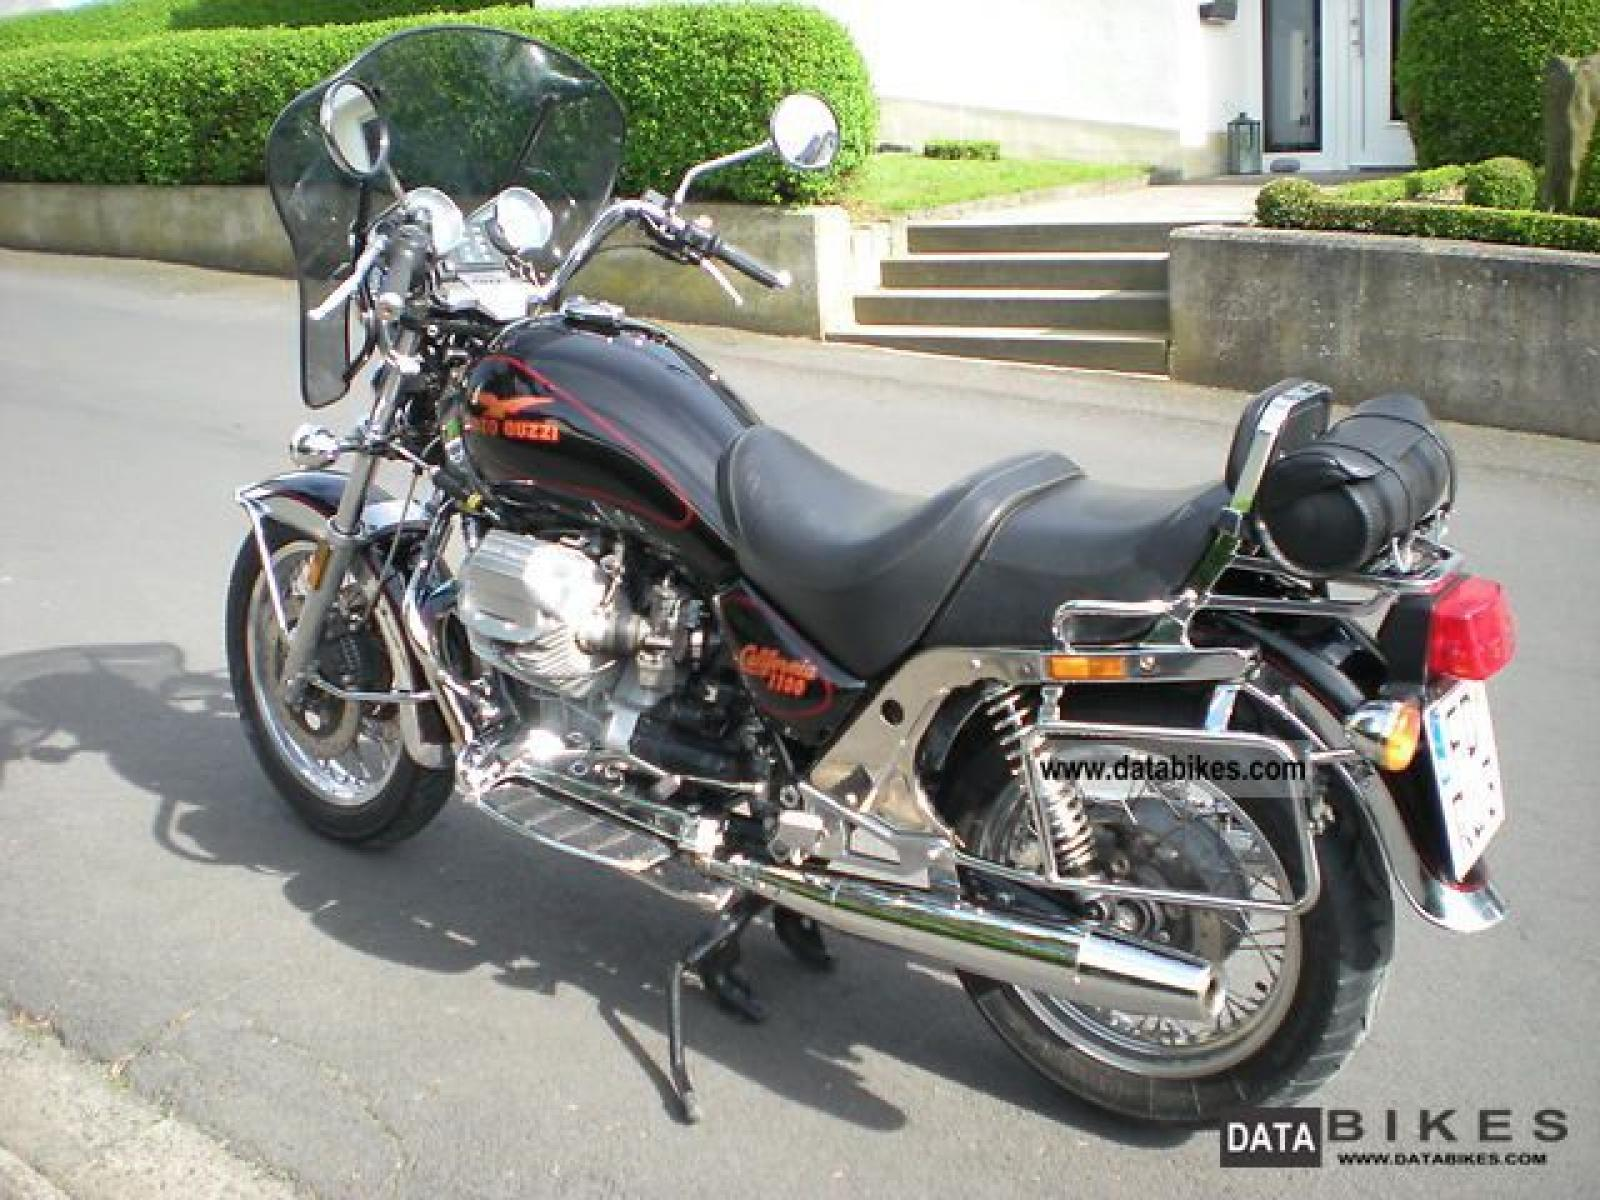 Moto Guzzi California 1100 Injection 1994 images #108136